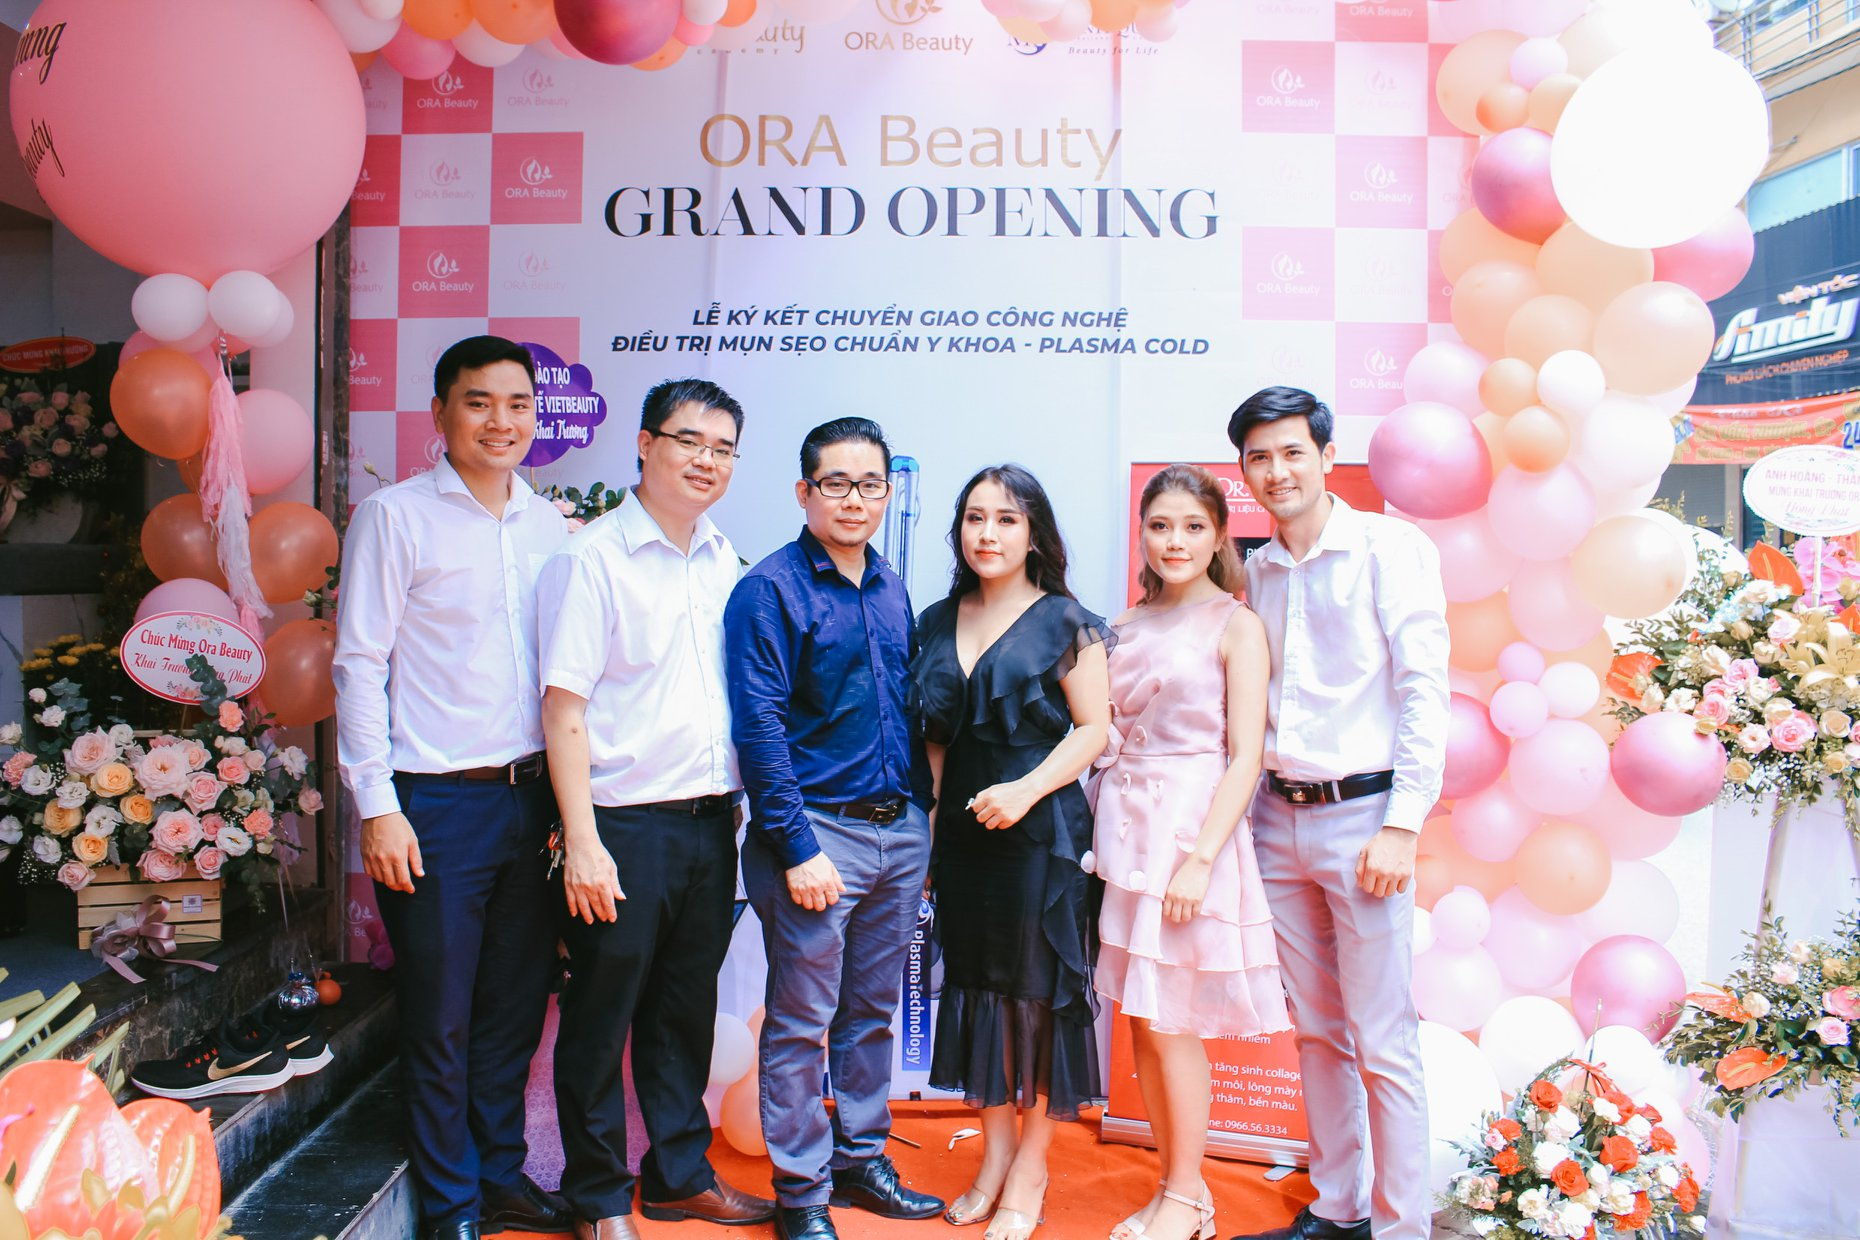 Ora beauty spa